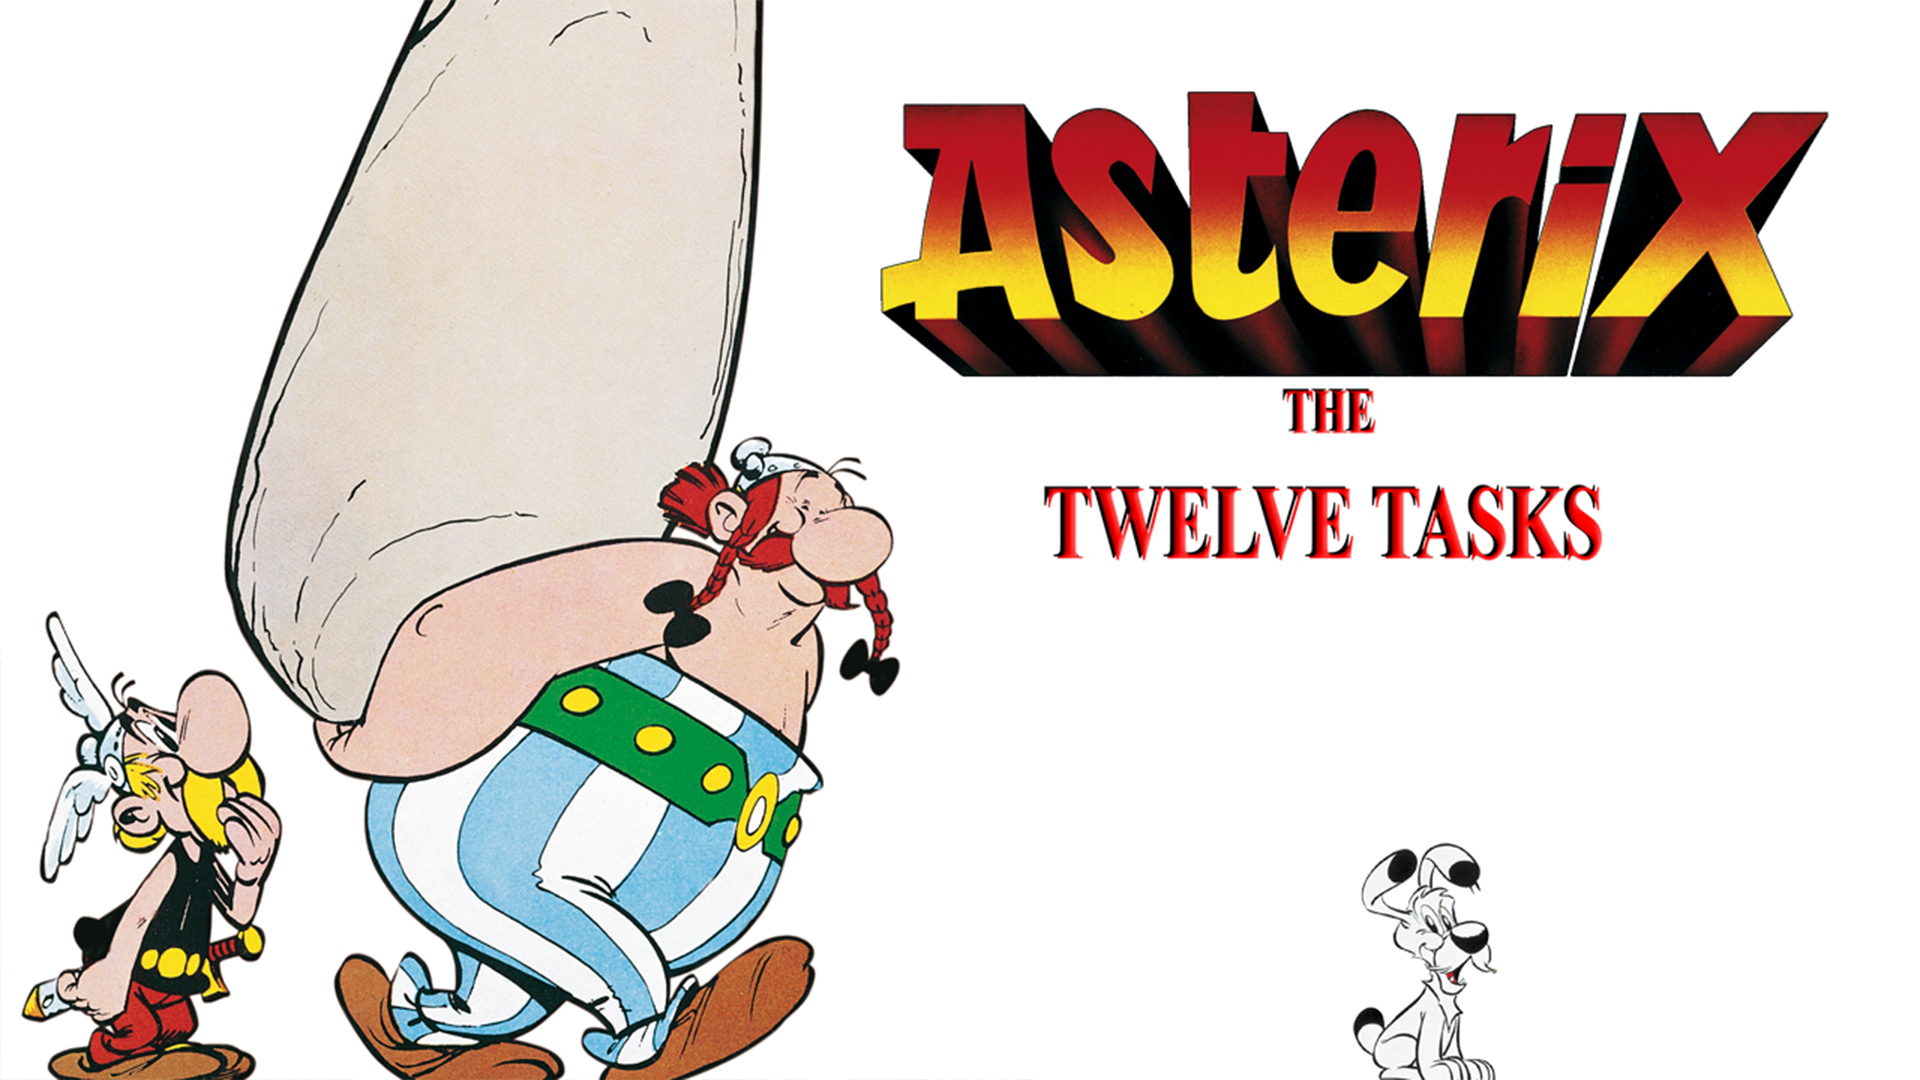 The 12 Tasks of Asterix